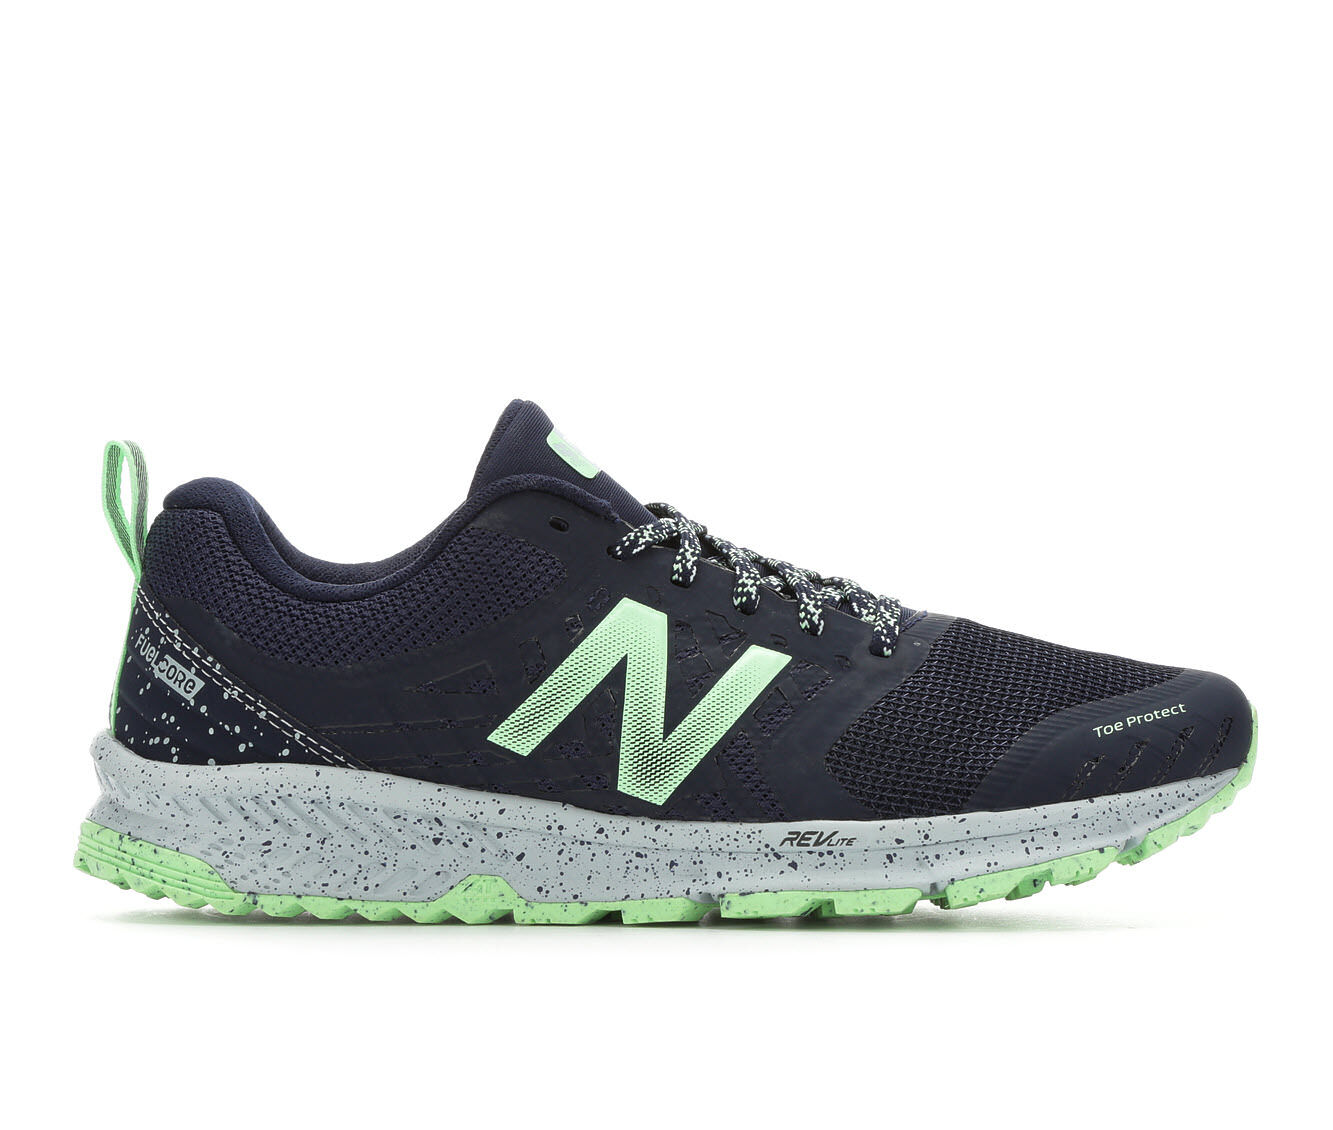 Women's New Balance WTNTRV1 Trail Running Shoes Navy/Green/Wht